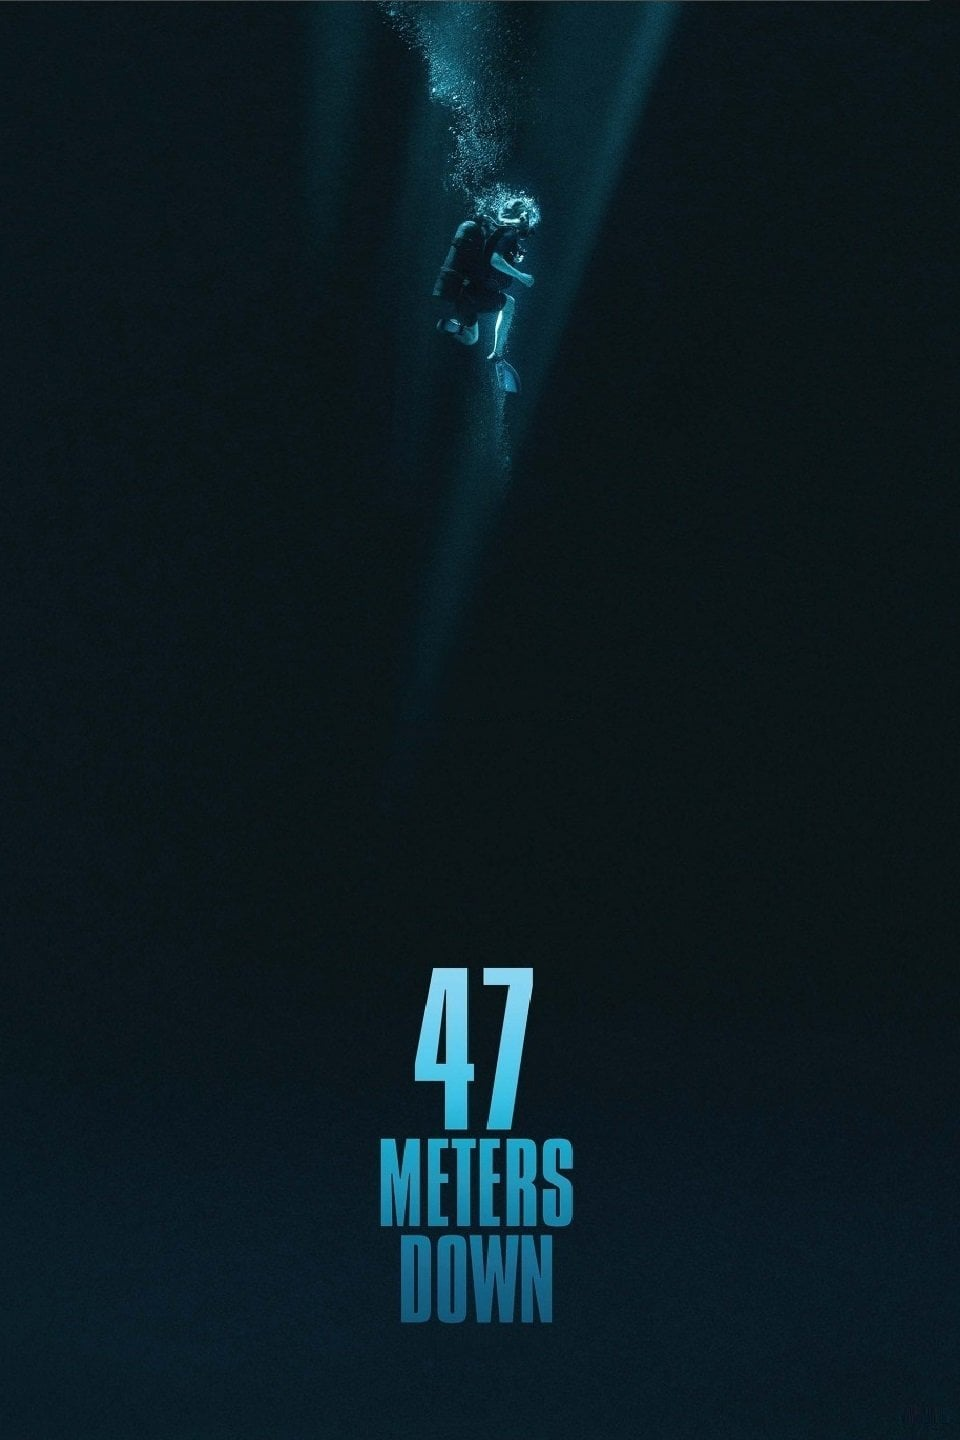 Assistir 47 Meters Down Legendado Online Legendado 1080p